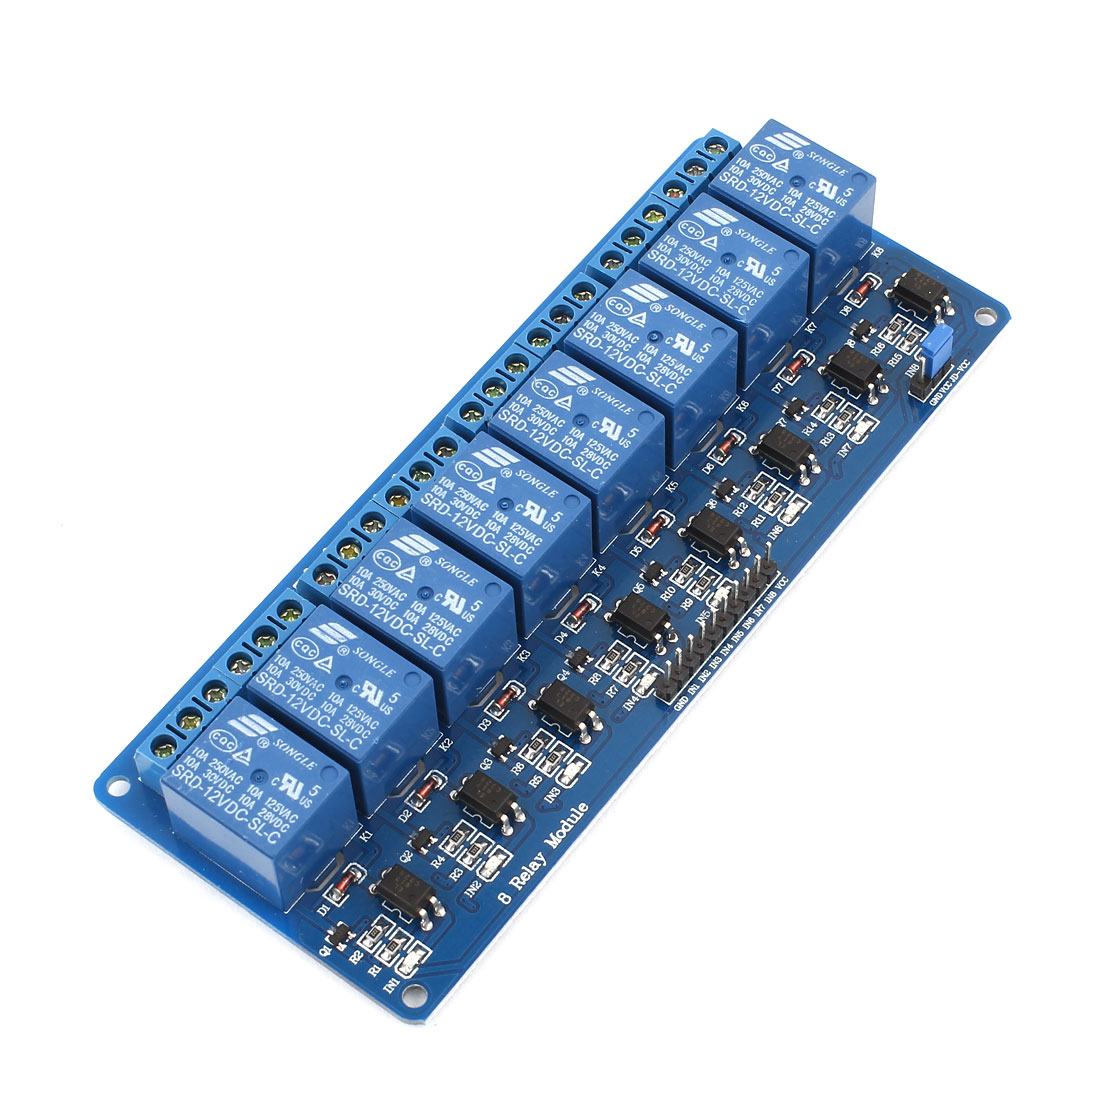 LED Indicator Light 8-CH Relay Module DC12V for AVR PIC DSP ARM MSP430